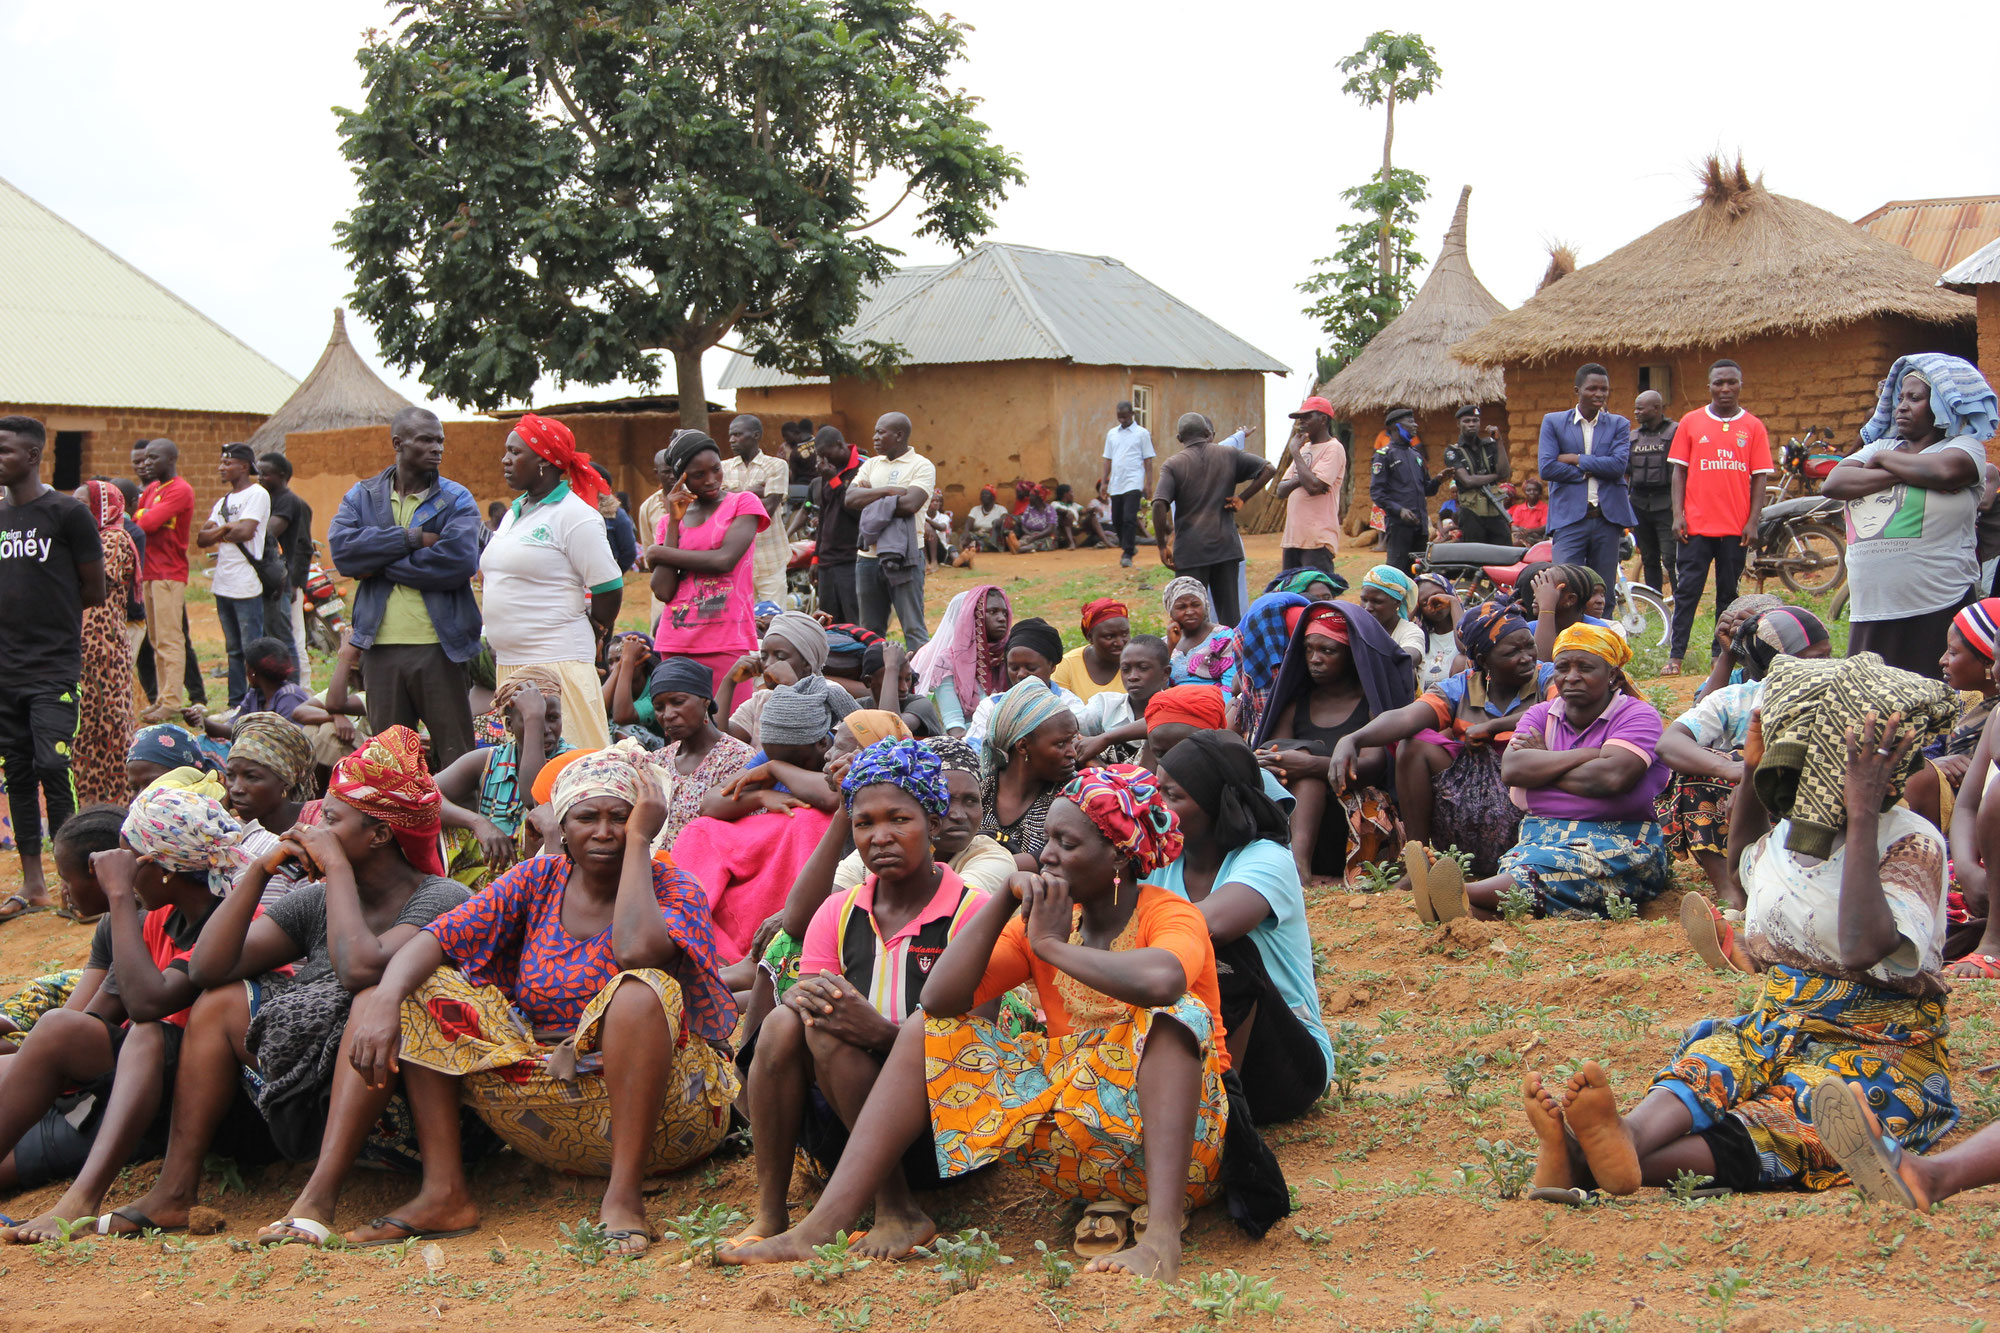 Boko Haram suspected of teaming up with Fulani jihadists to kill Christians in central Nigeria